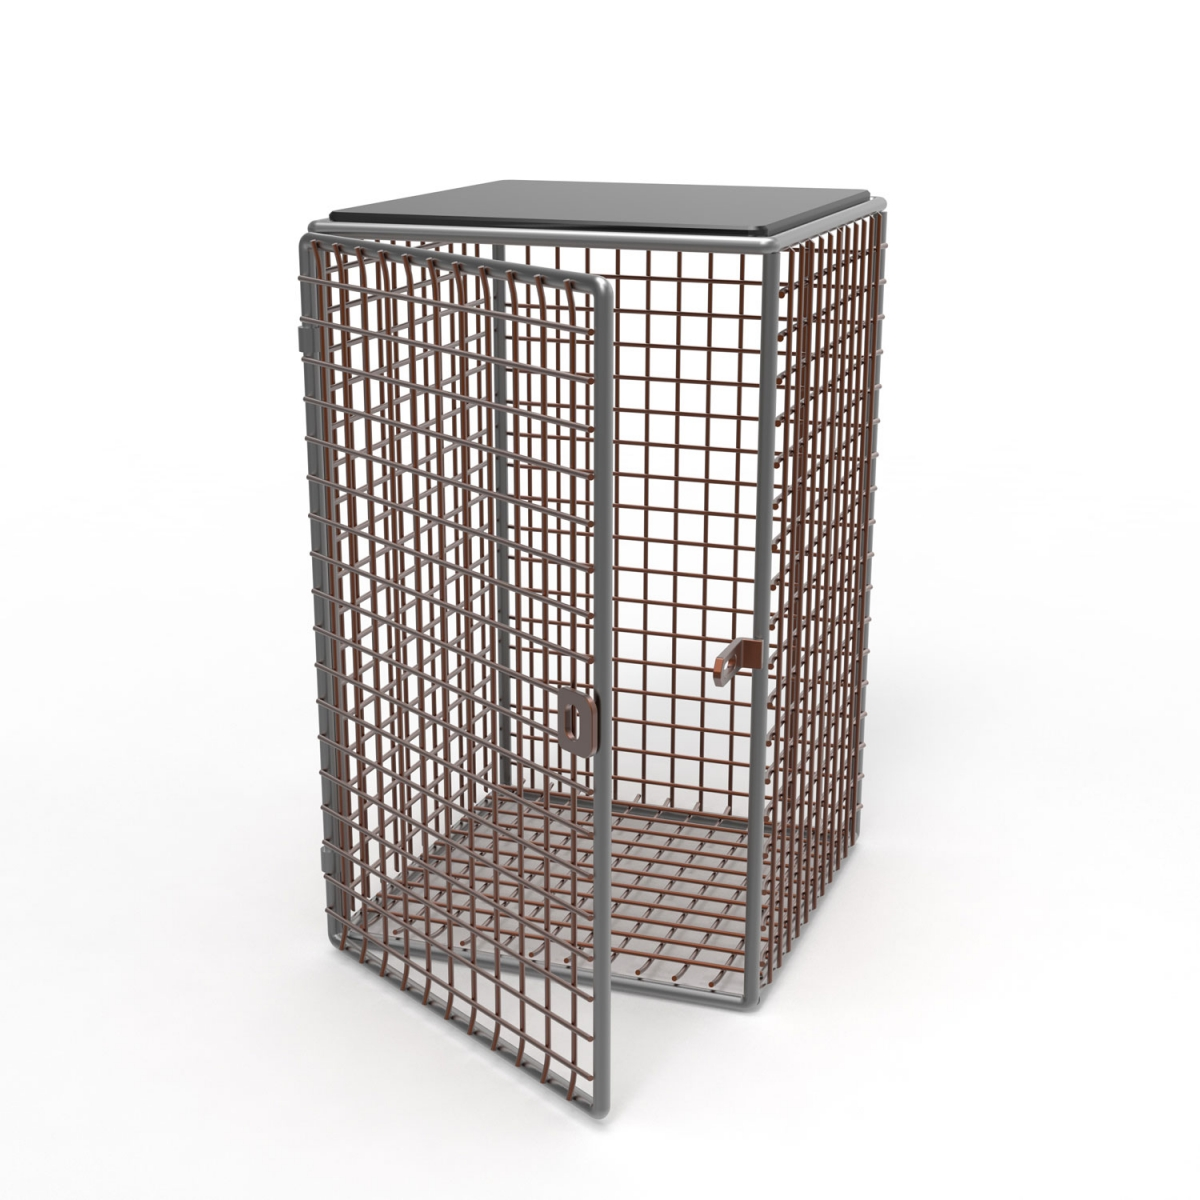 Bowles U0026 Bowles : Wire Mesh Furniture Collection U2013 Flodeau